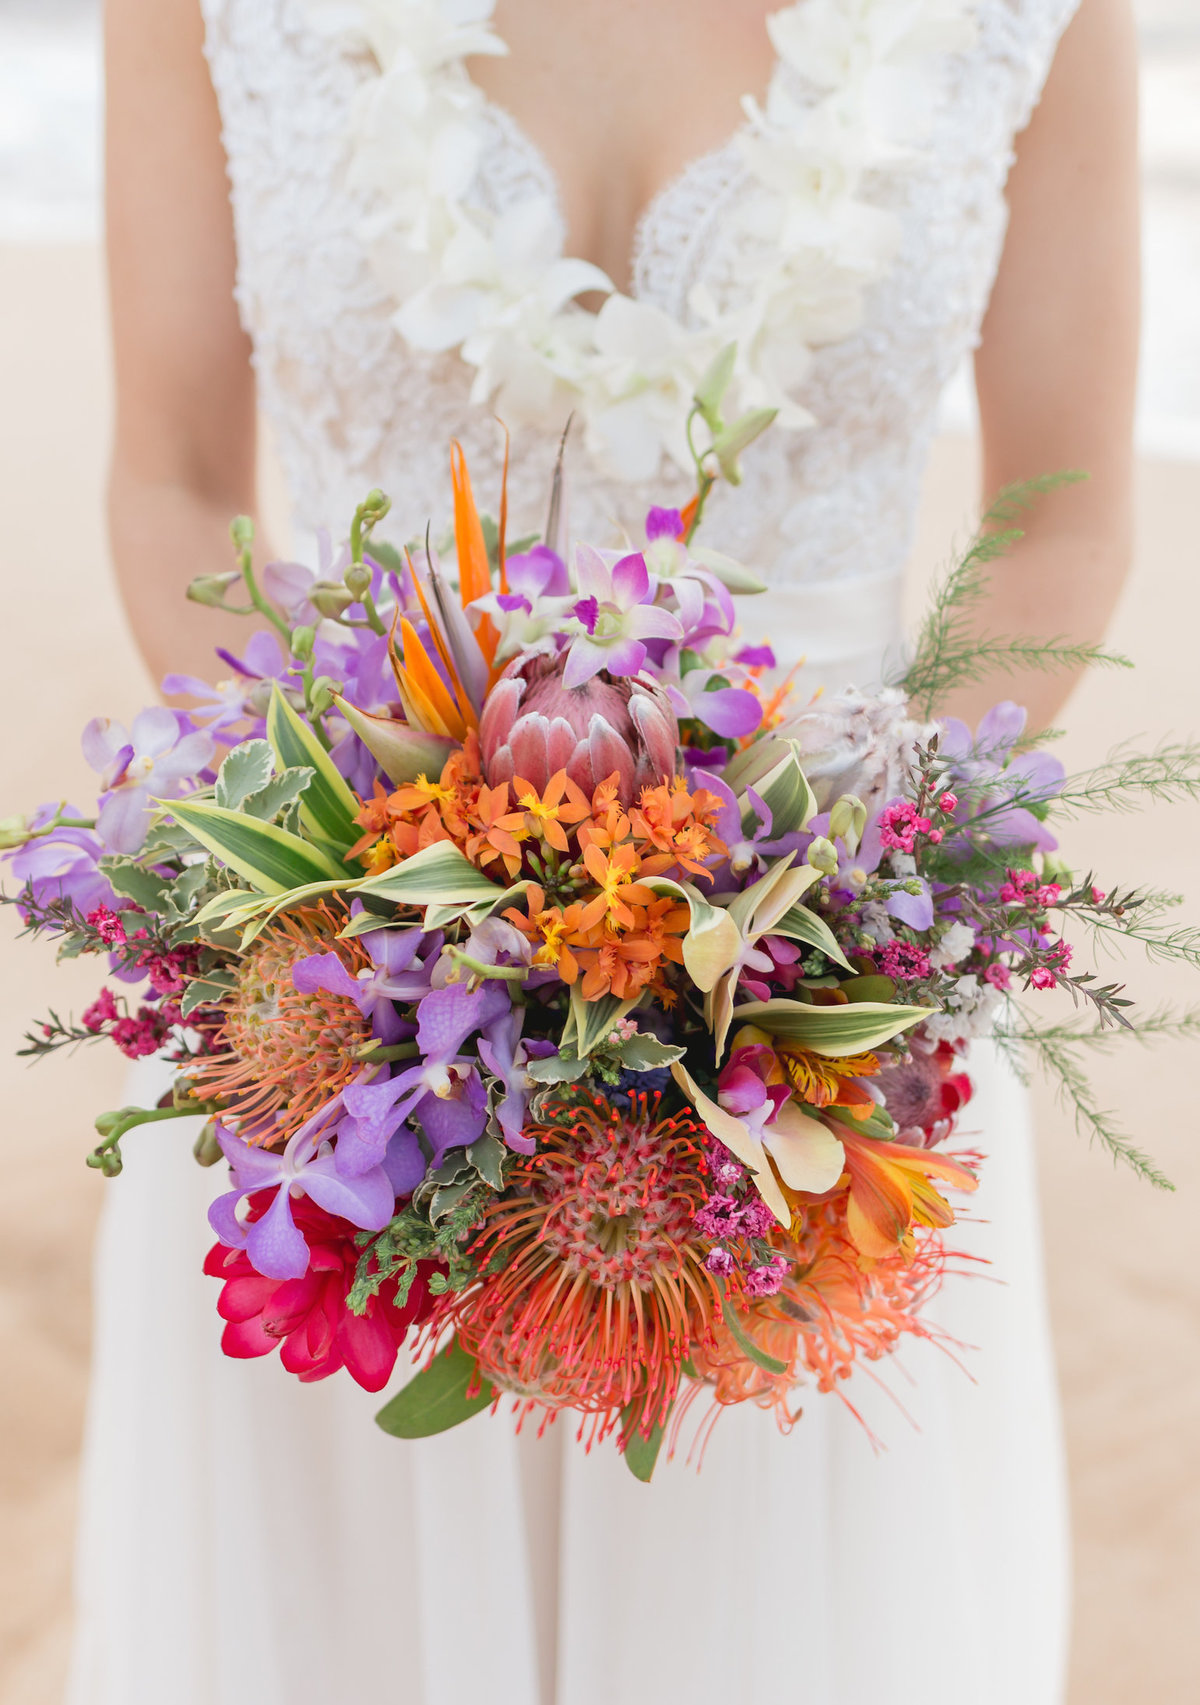 View beautiful maui wedding flowers and bouquets in hawaii izmirmasajfo